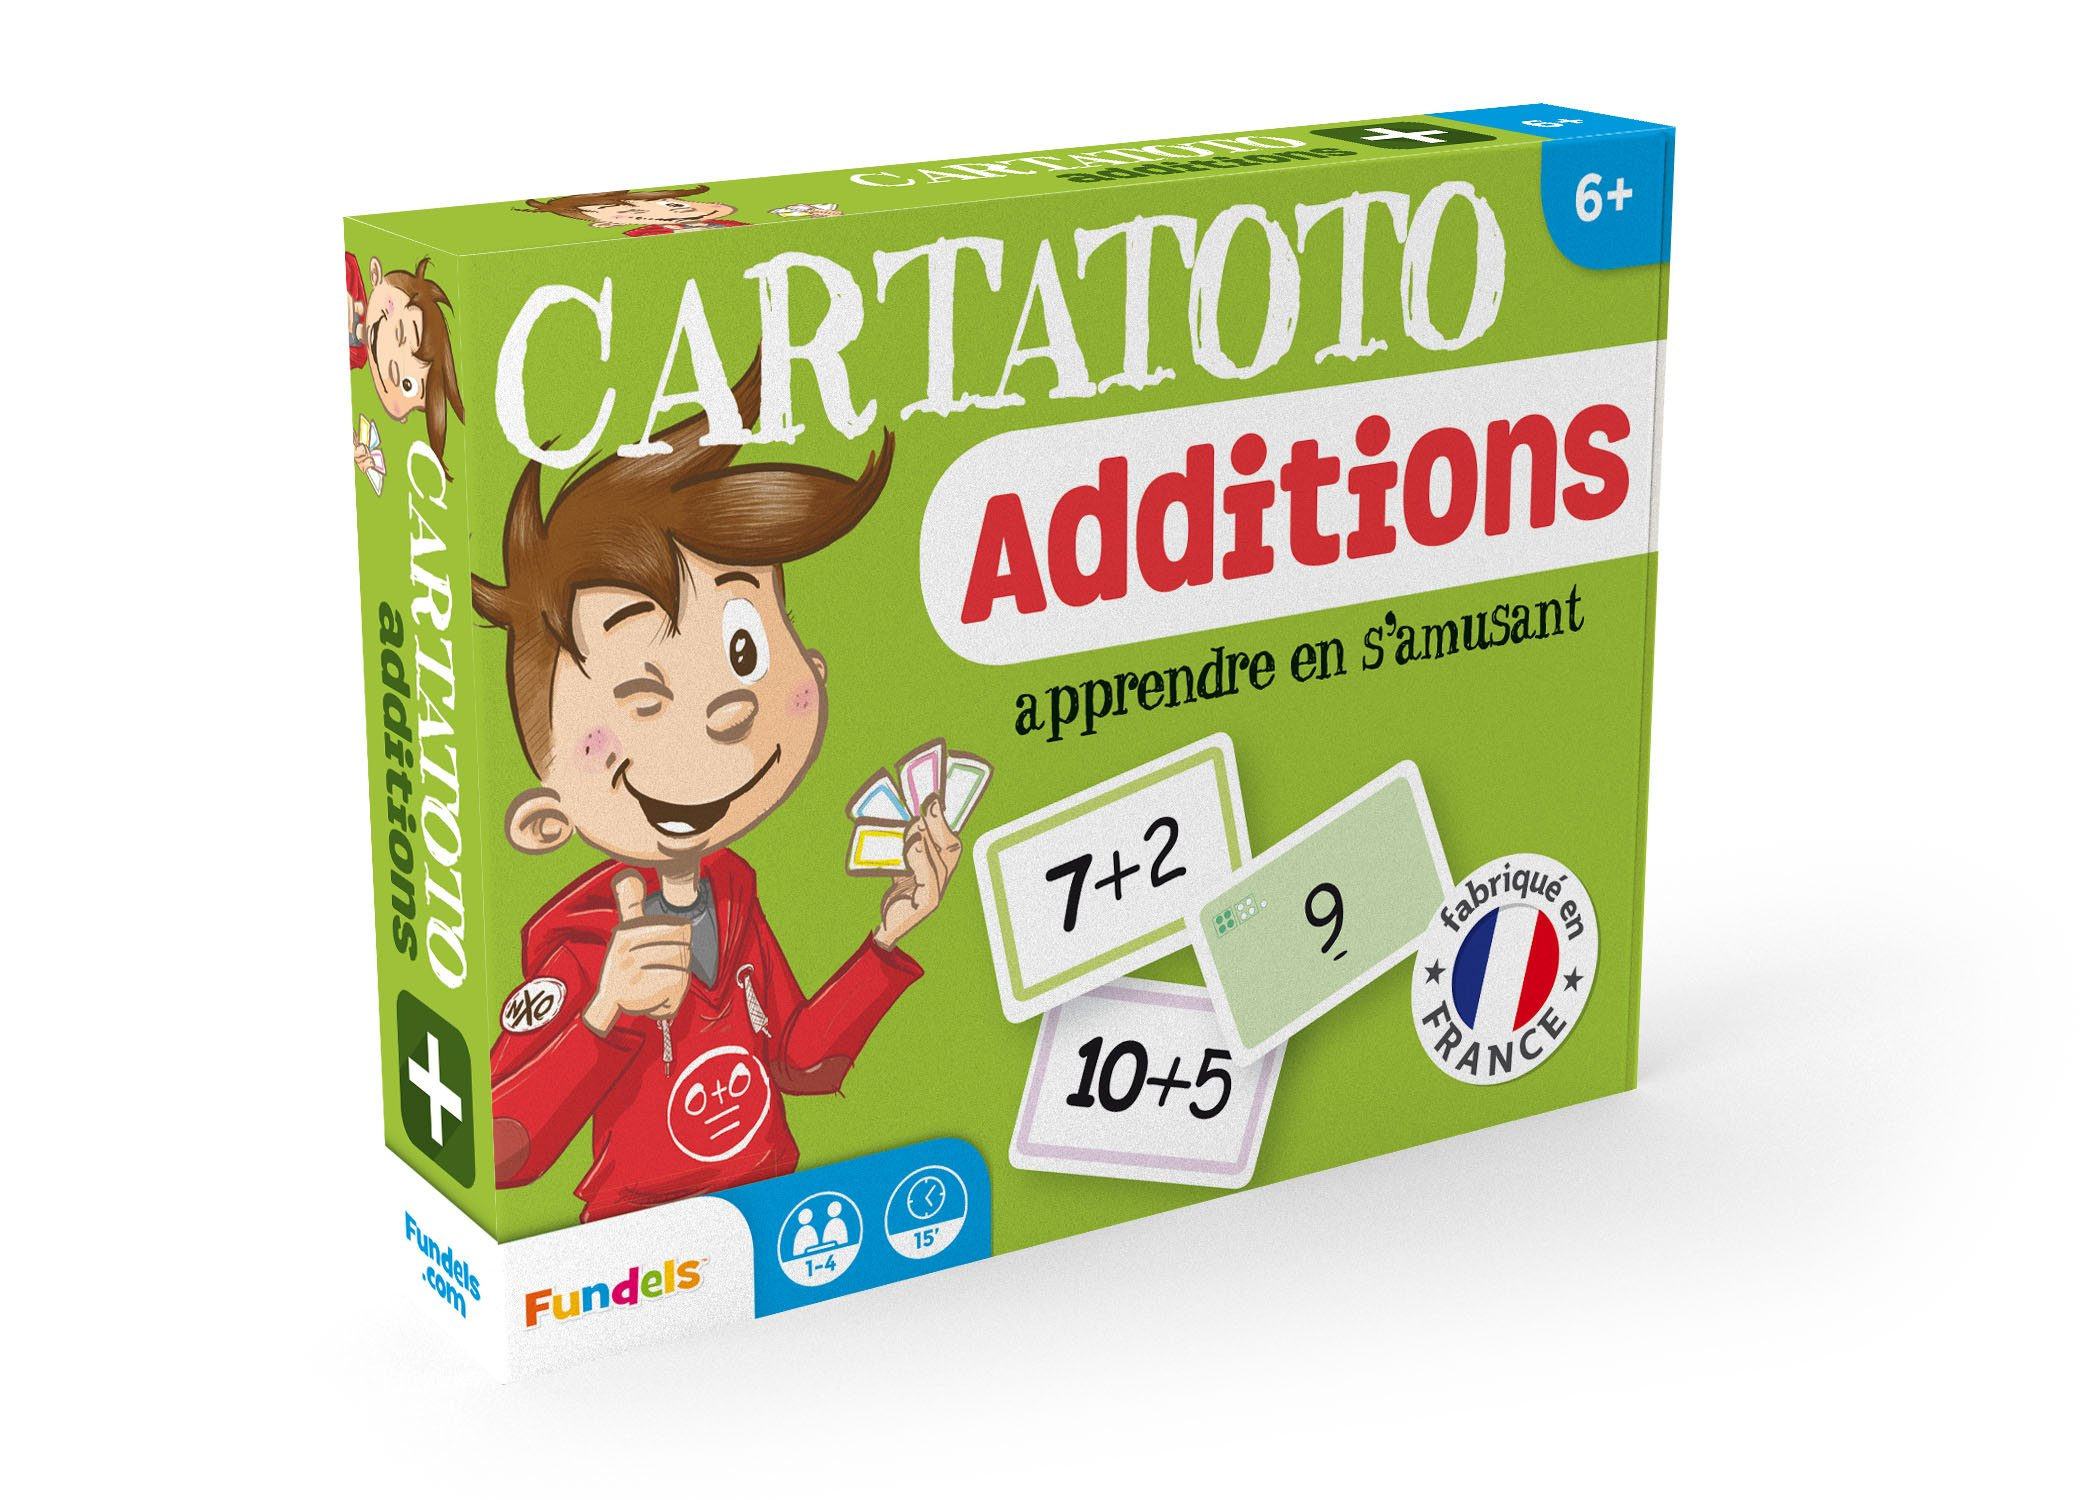 Cartatoto Apprendre les Additions - Jeu de cartes Educatif product image